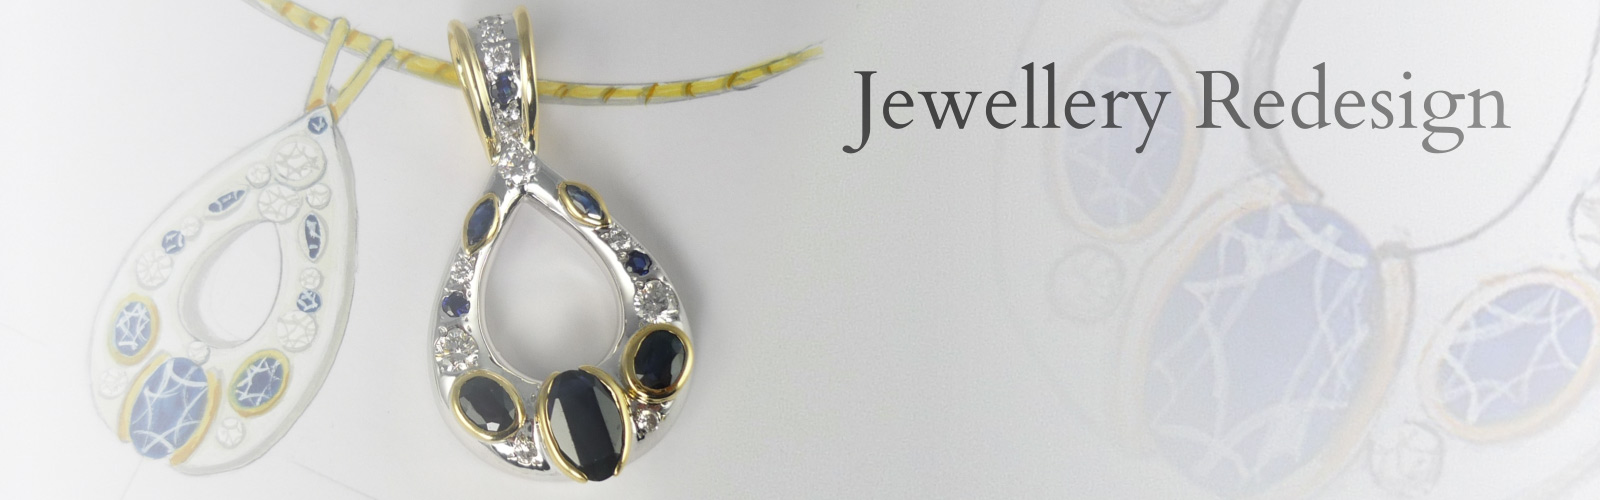 13 Edinburgh Jewellers - Denzil Skinner & Partners